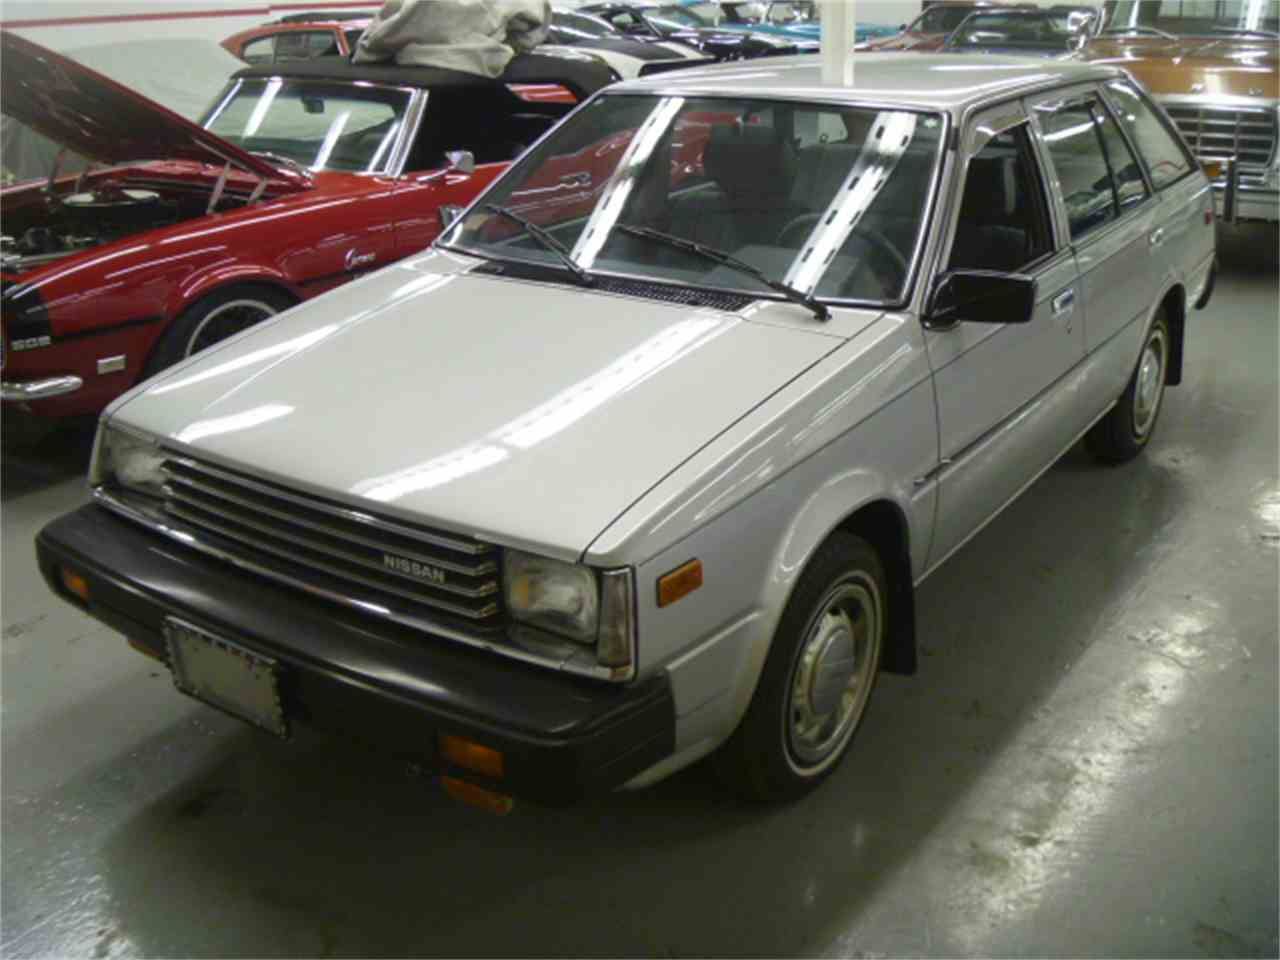 Large Picture of '83 Nissan Sentra wagon  located in Illinois - JQBN